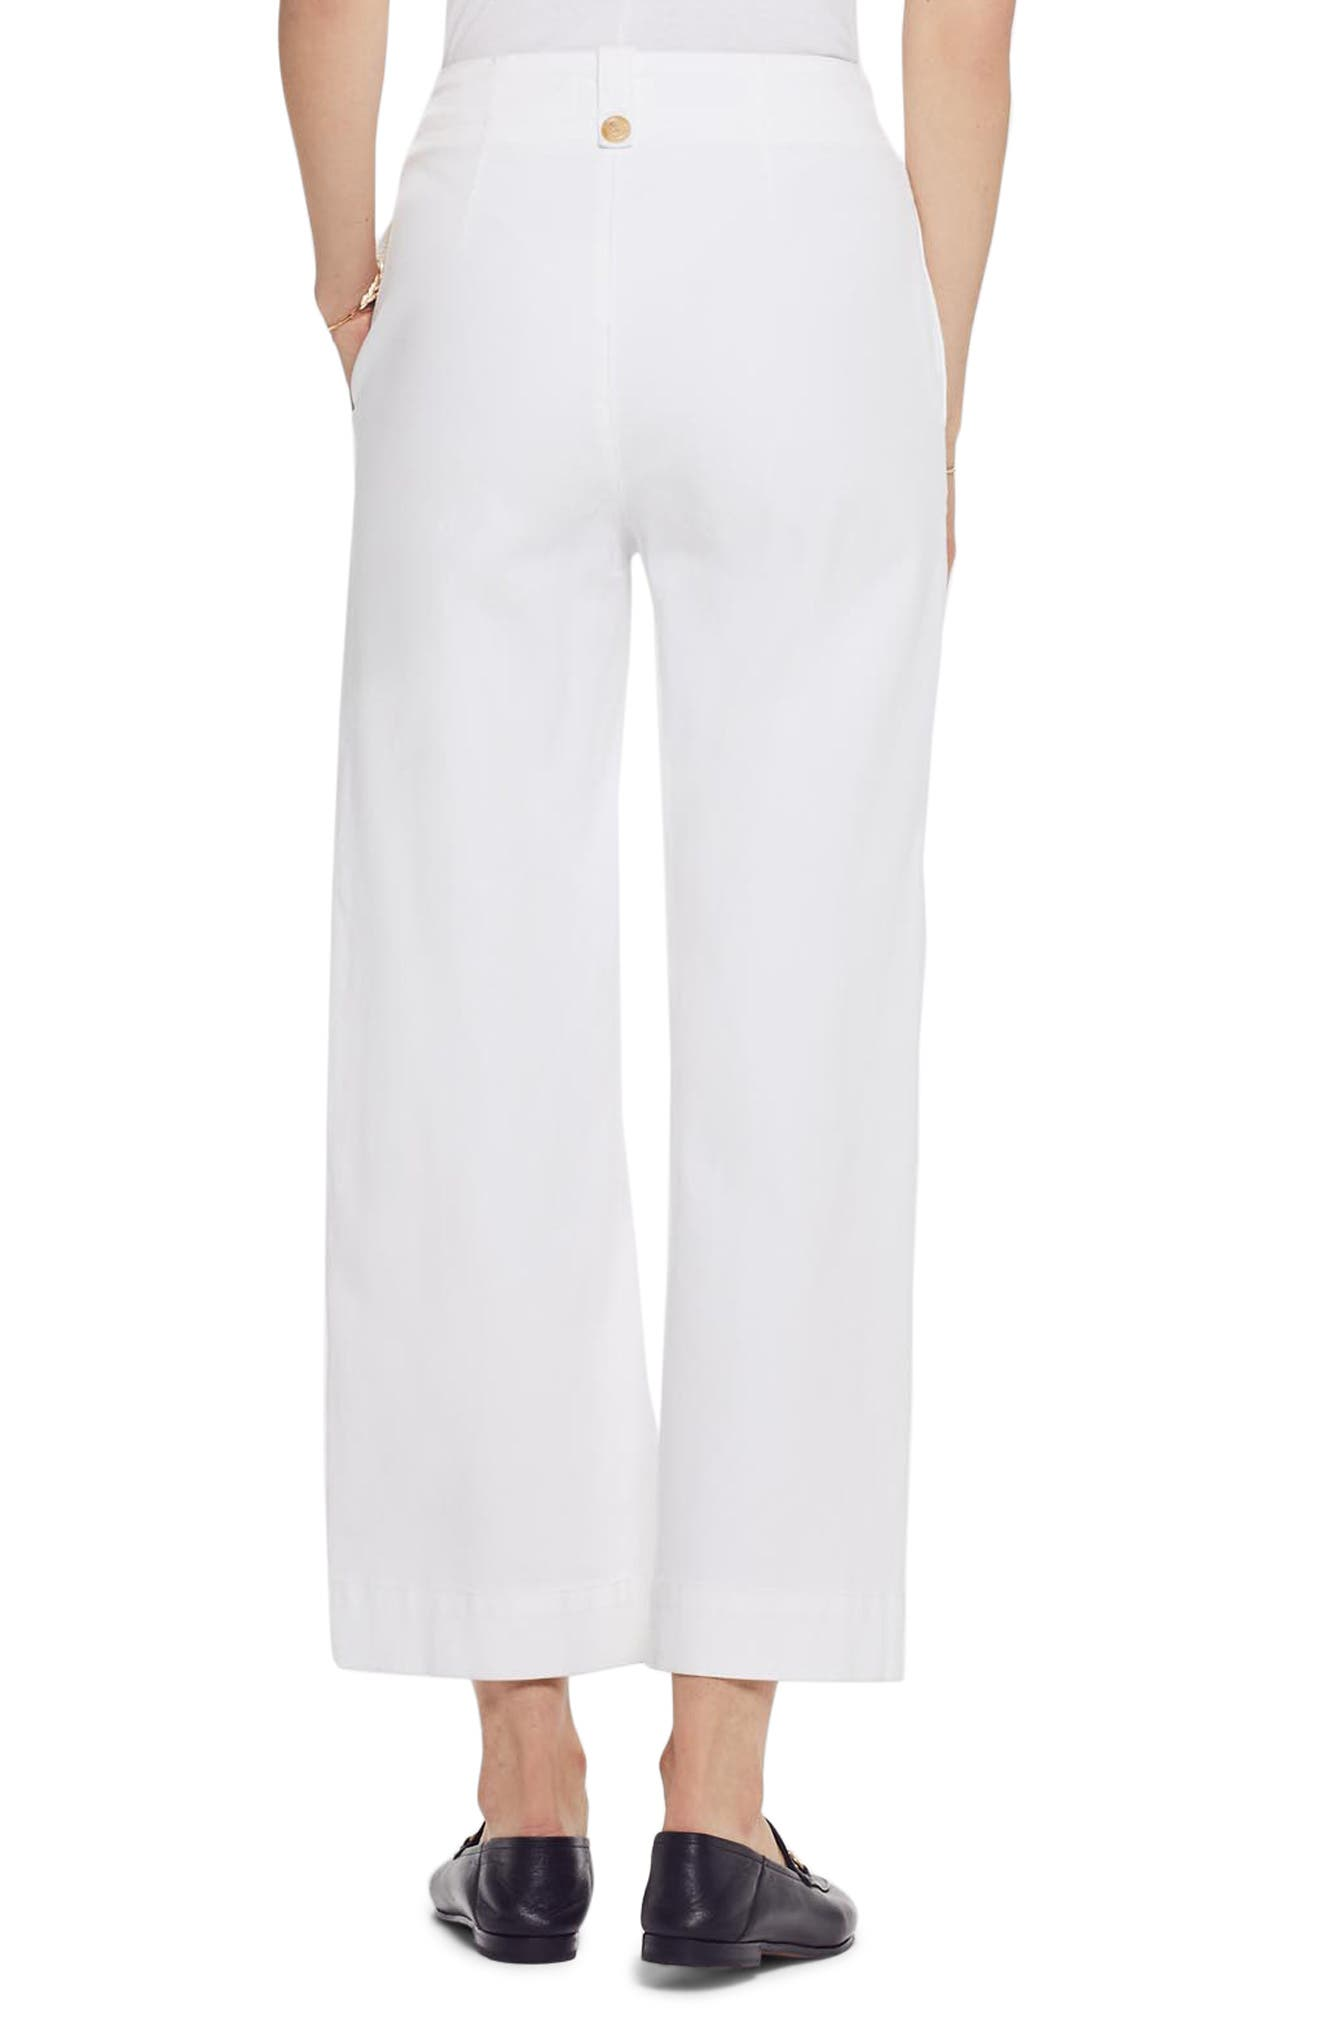 MOTHER, The Greaser Crop Wide Leg Jeans, Alternate thumbnail 2, color, GLASS SLIPPER